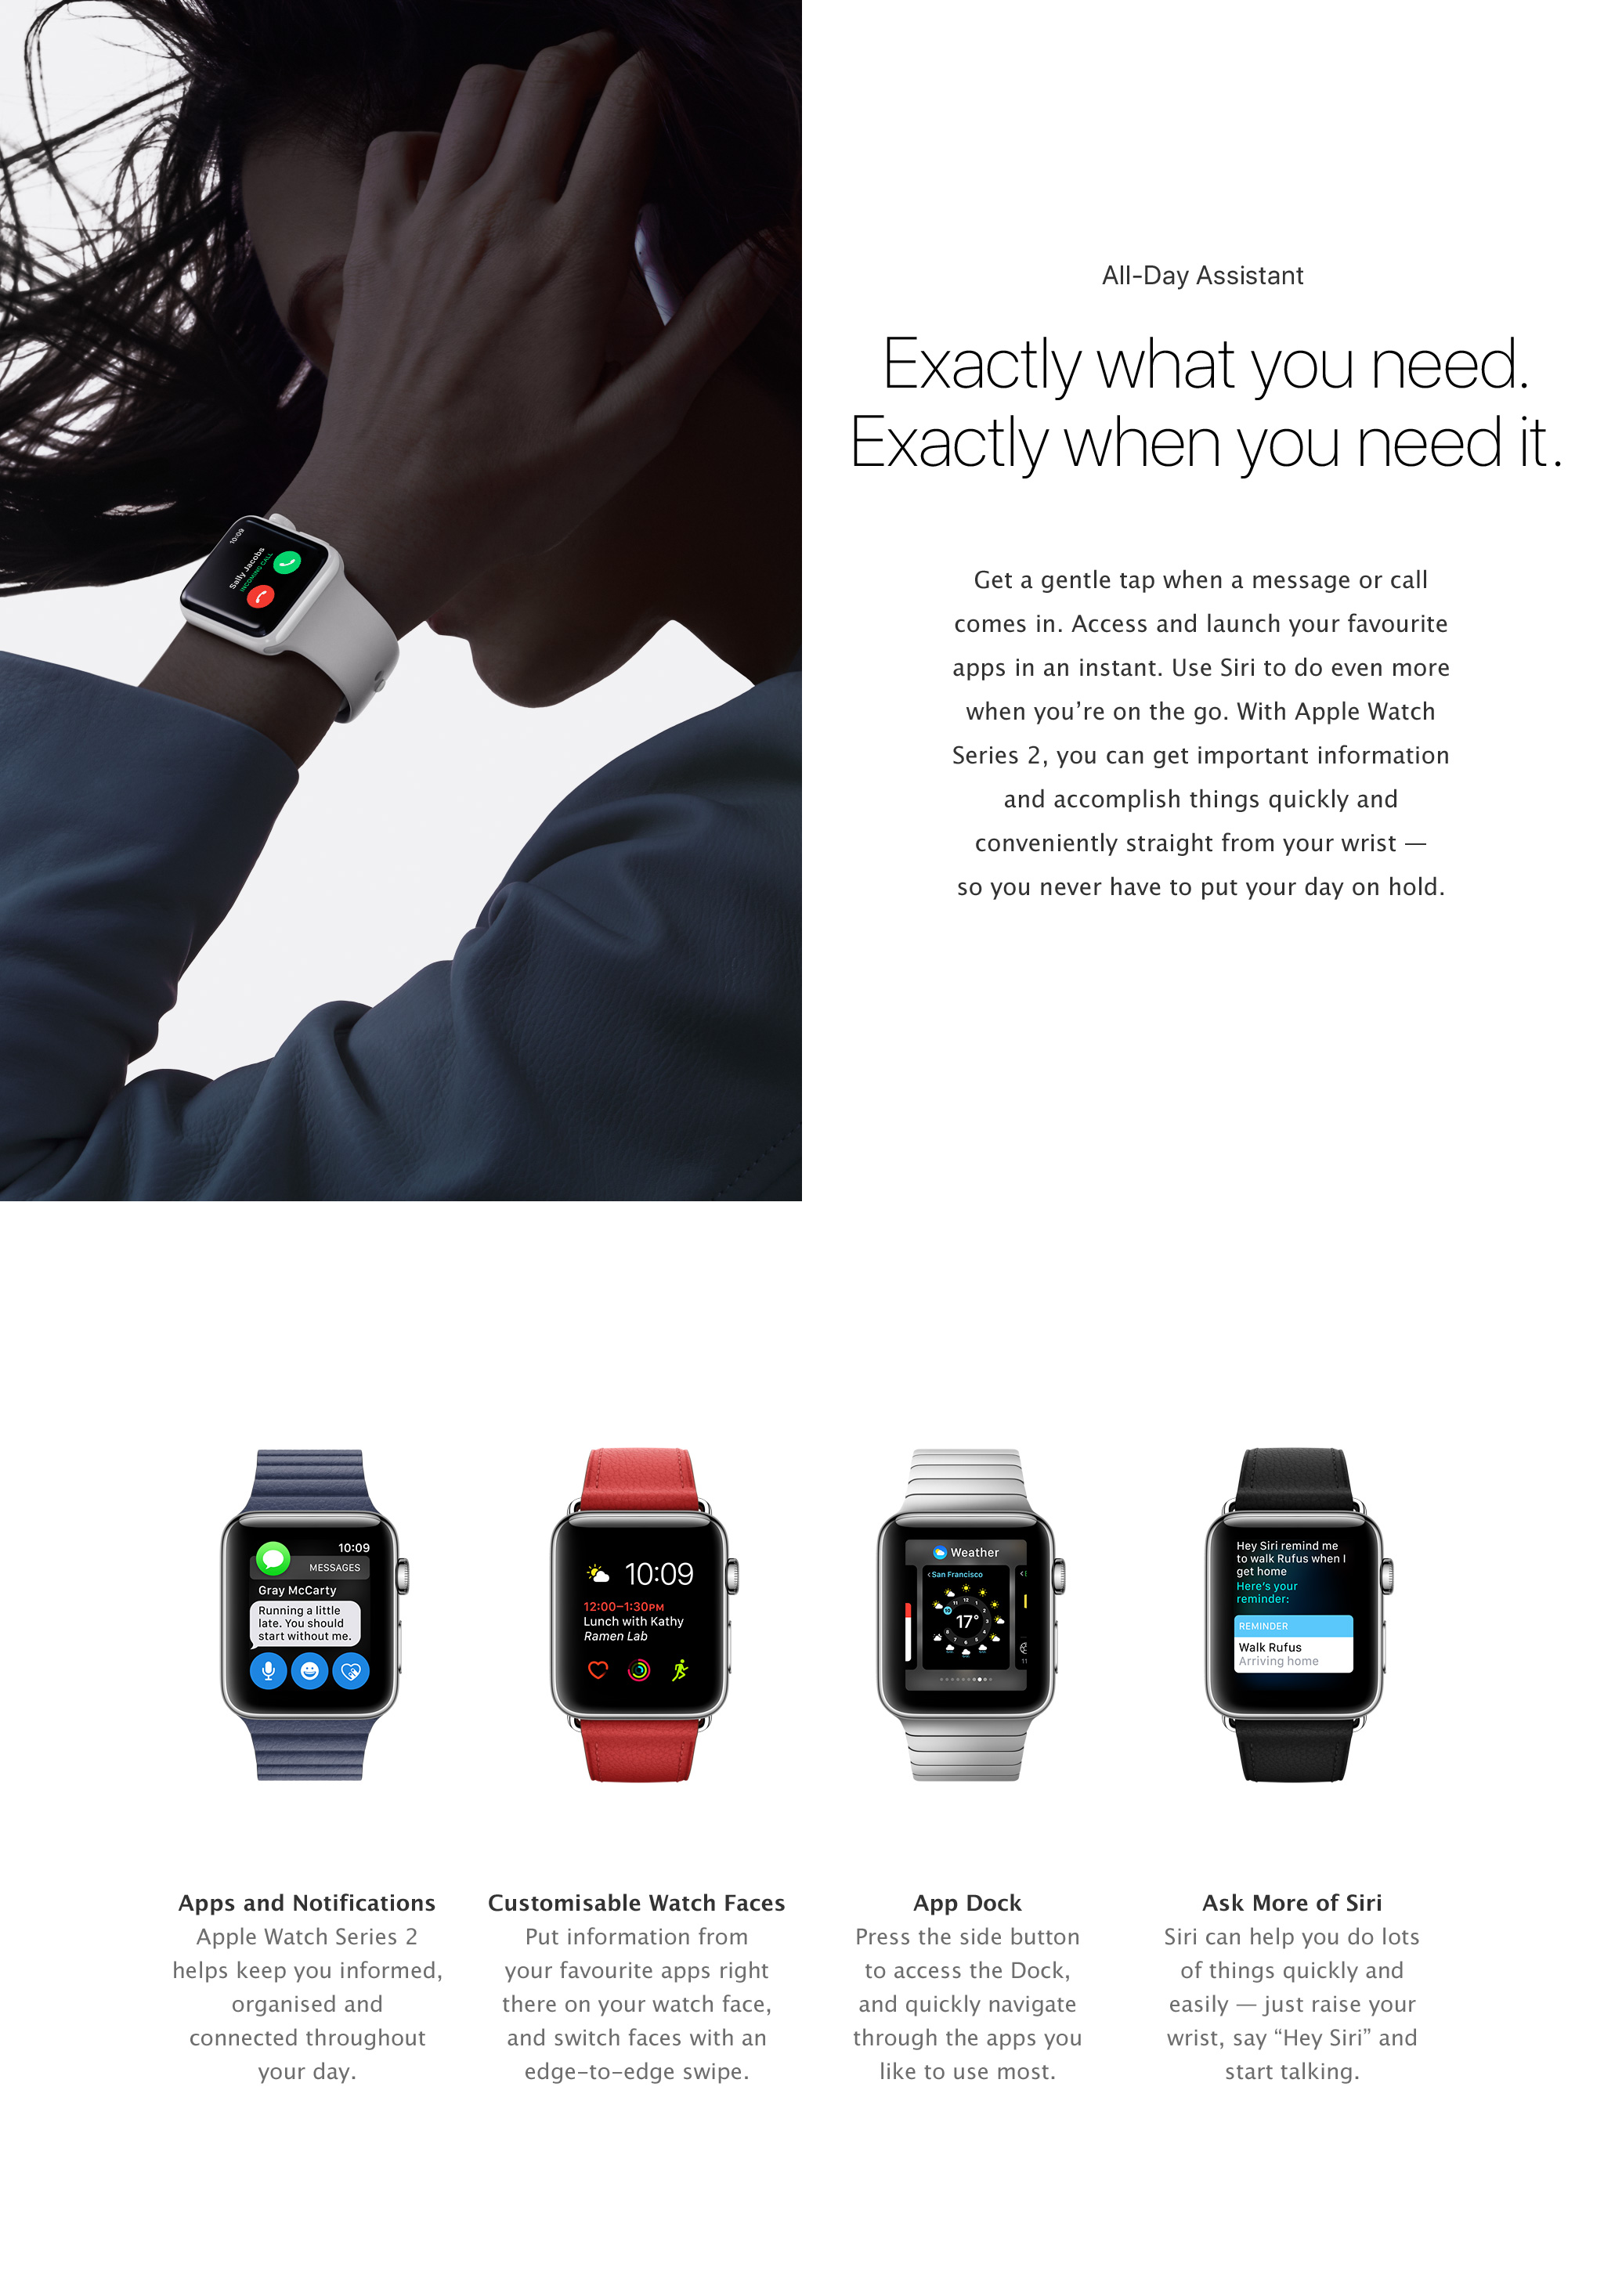 Apple Watch features